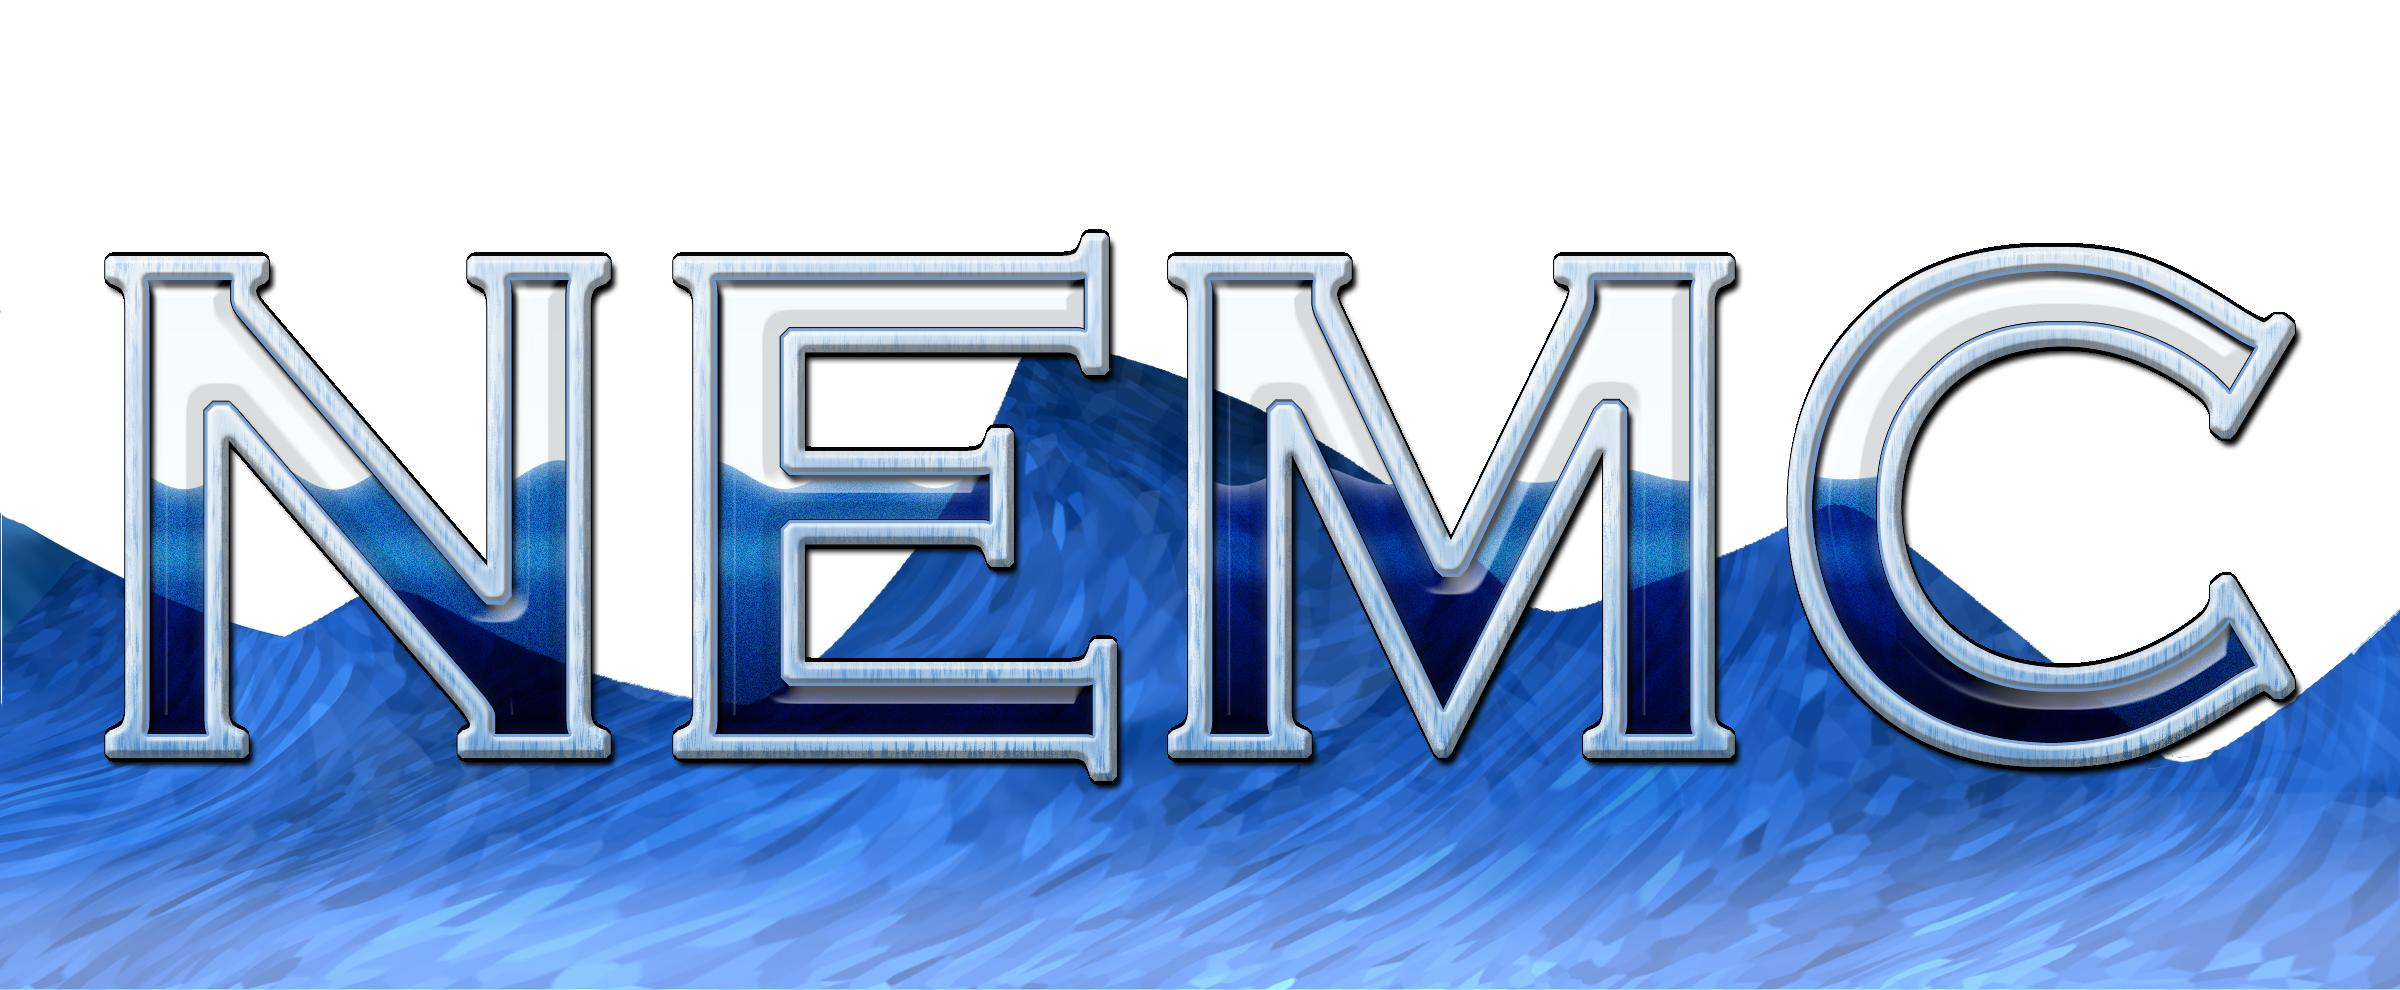 nemc_logo_abstract.jpg